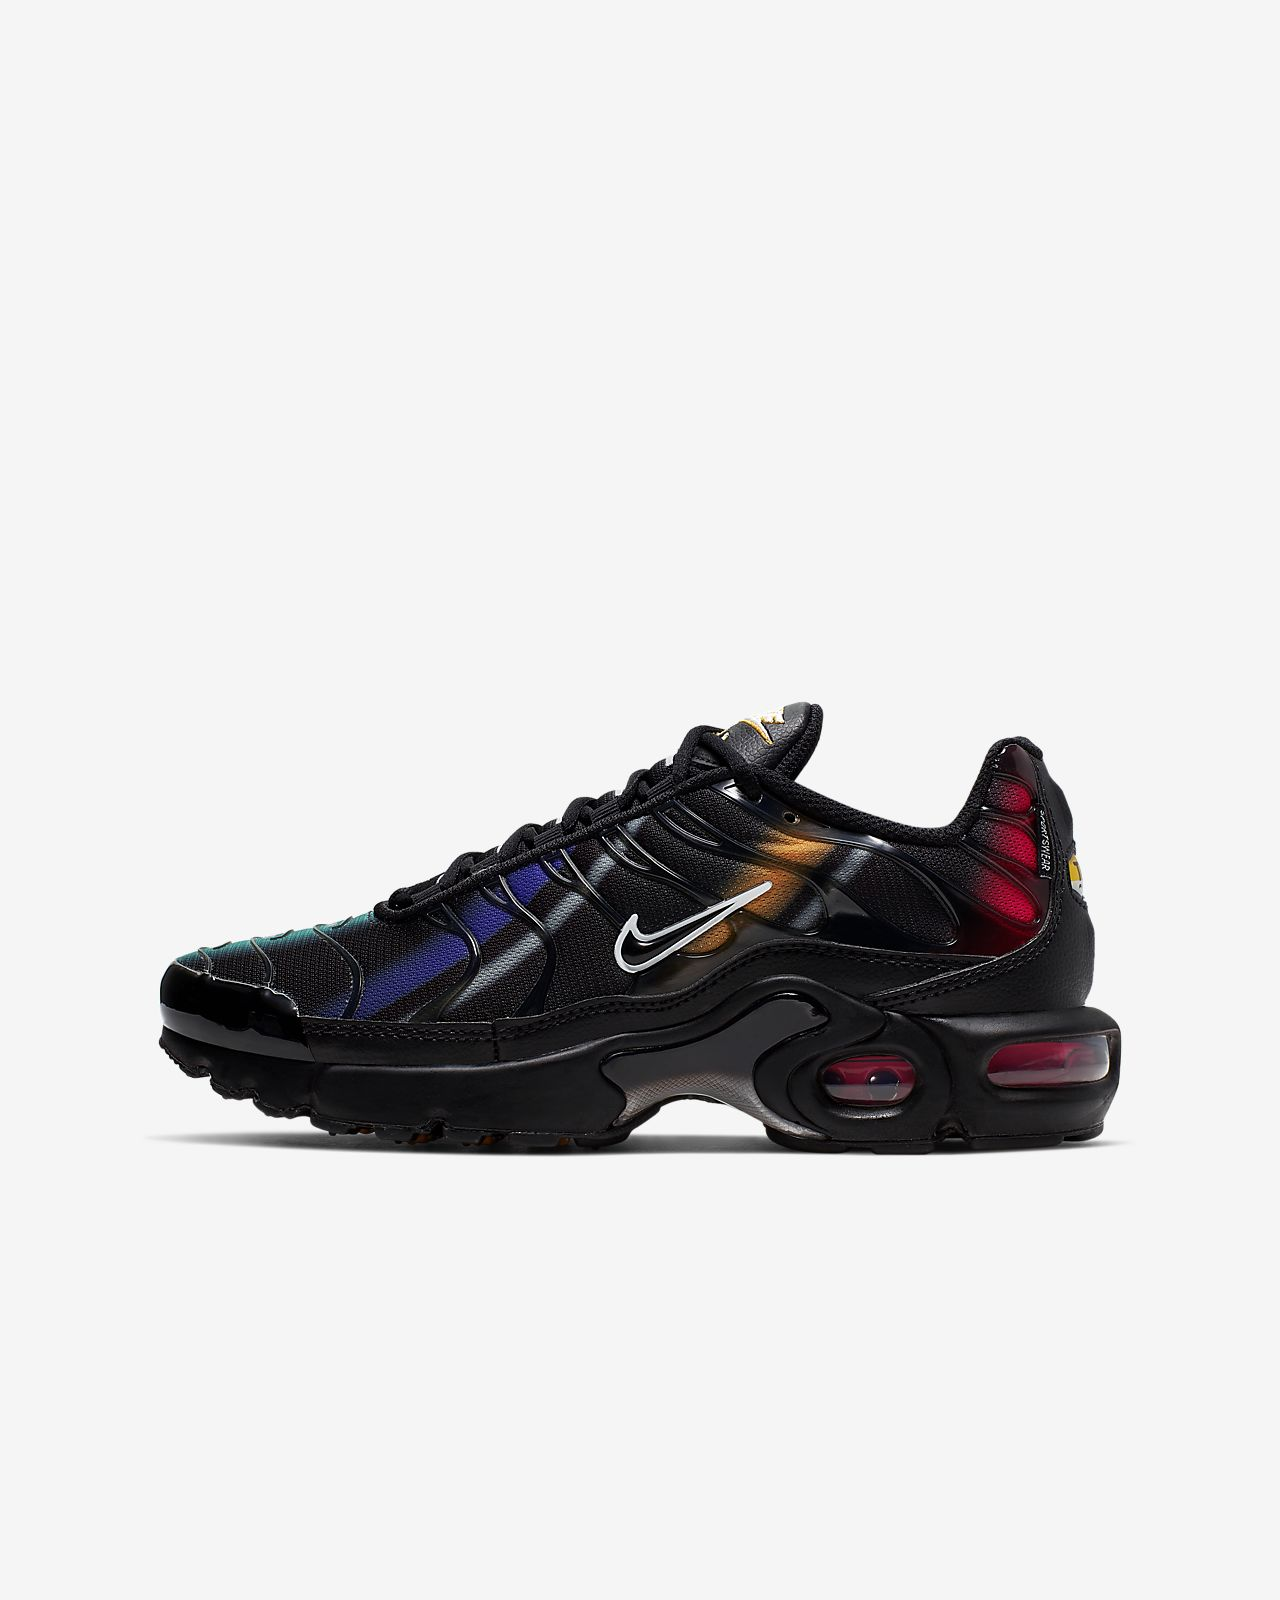 Nike Air Max Plus Game Zapatillas - Niño/a